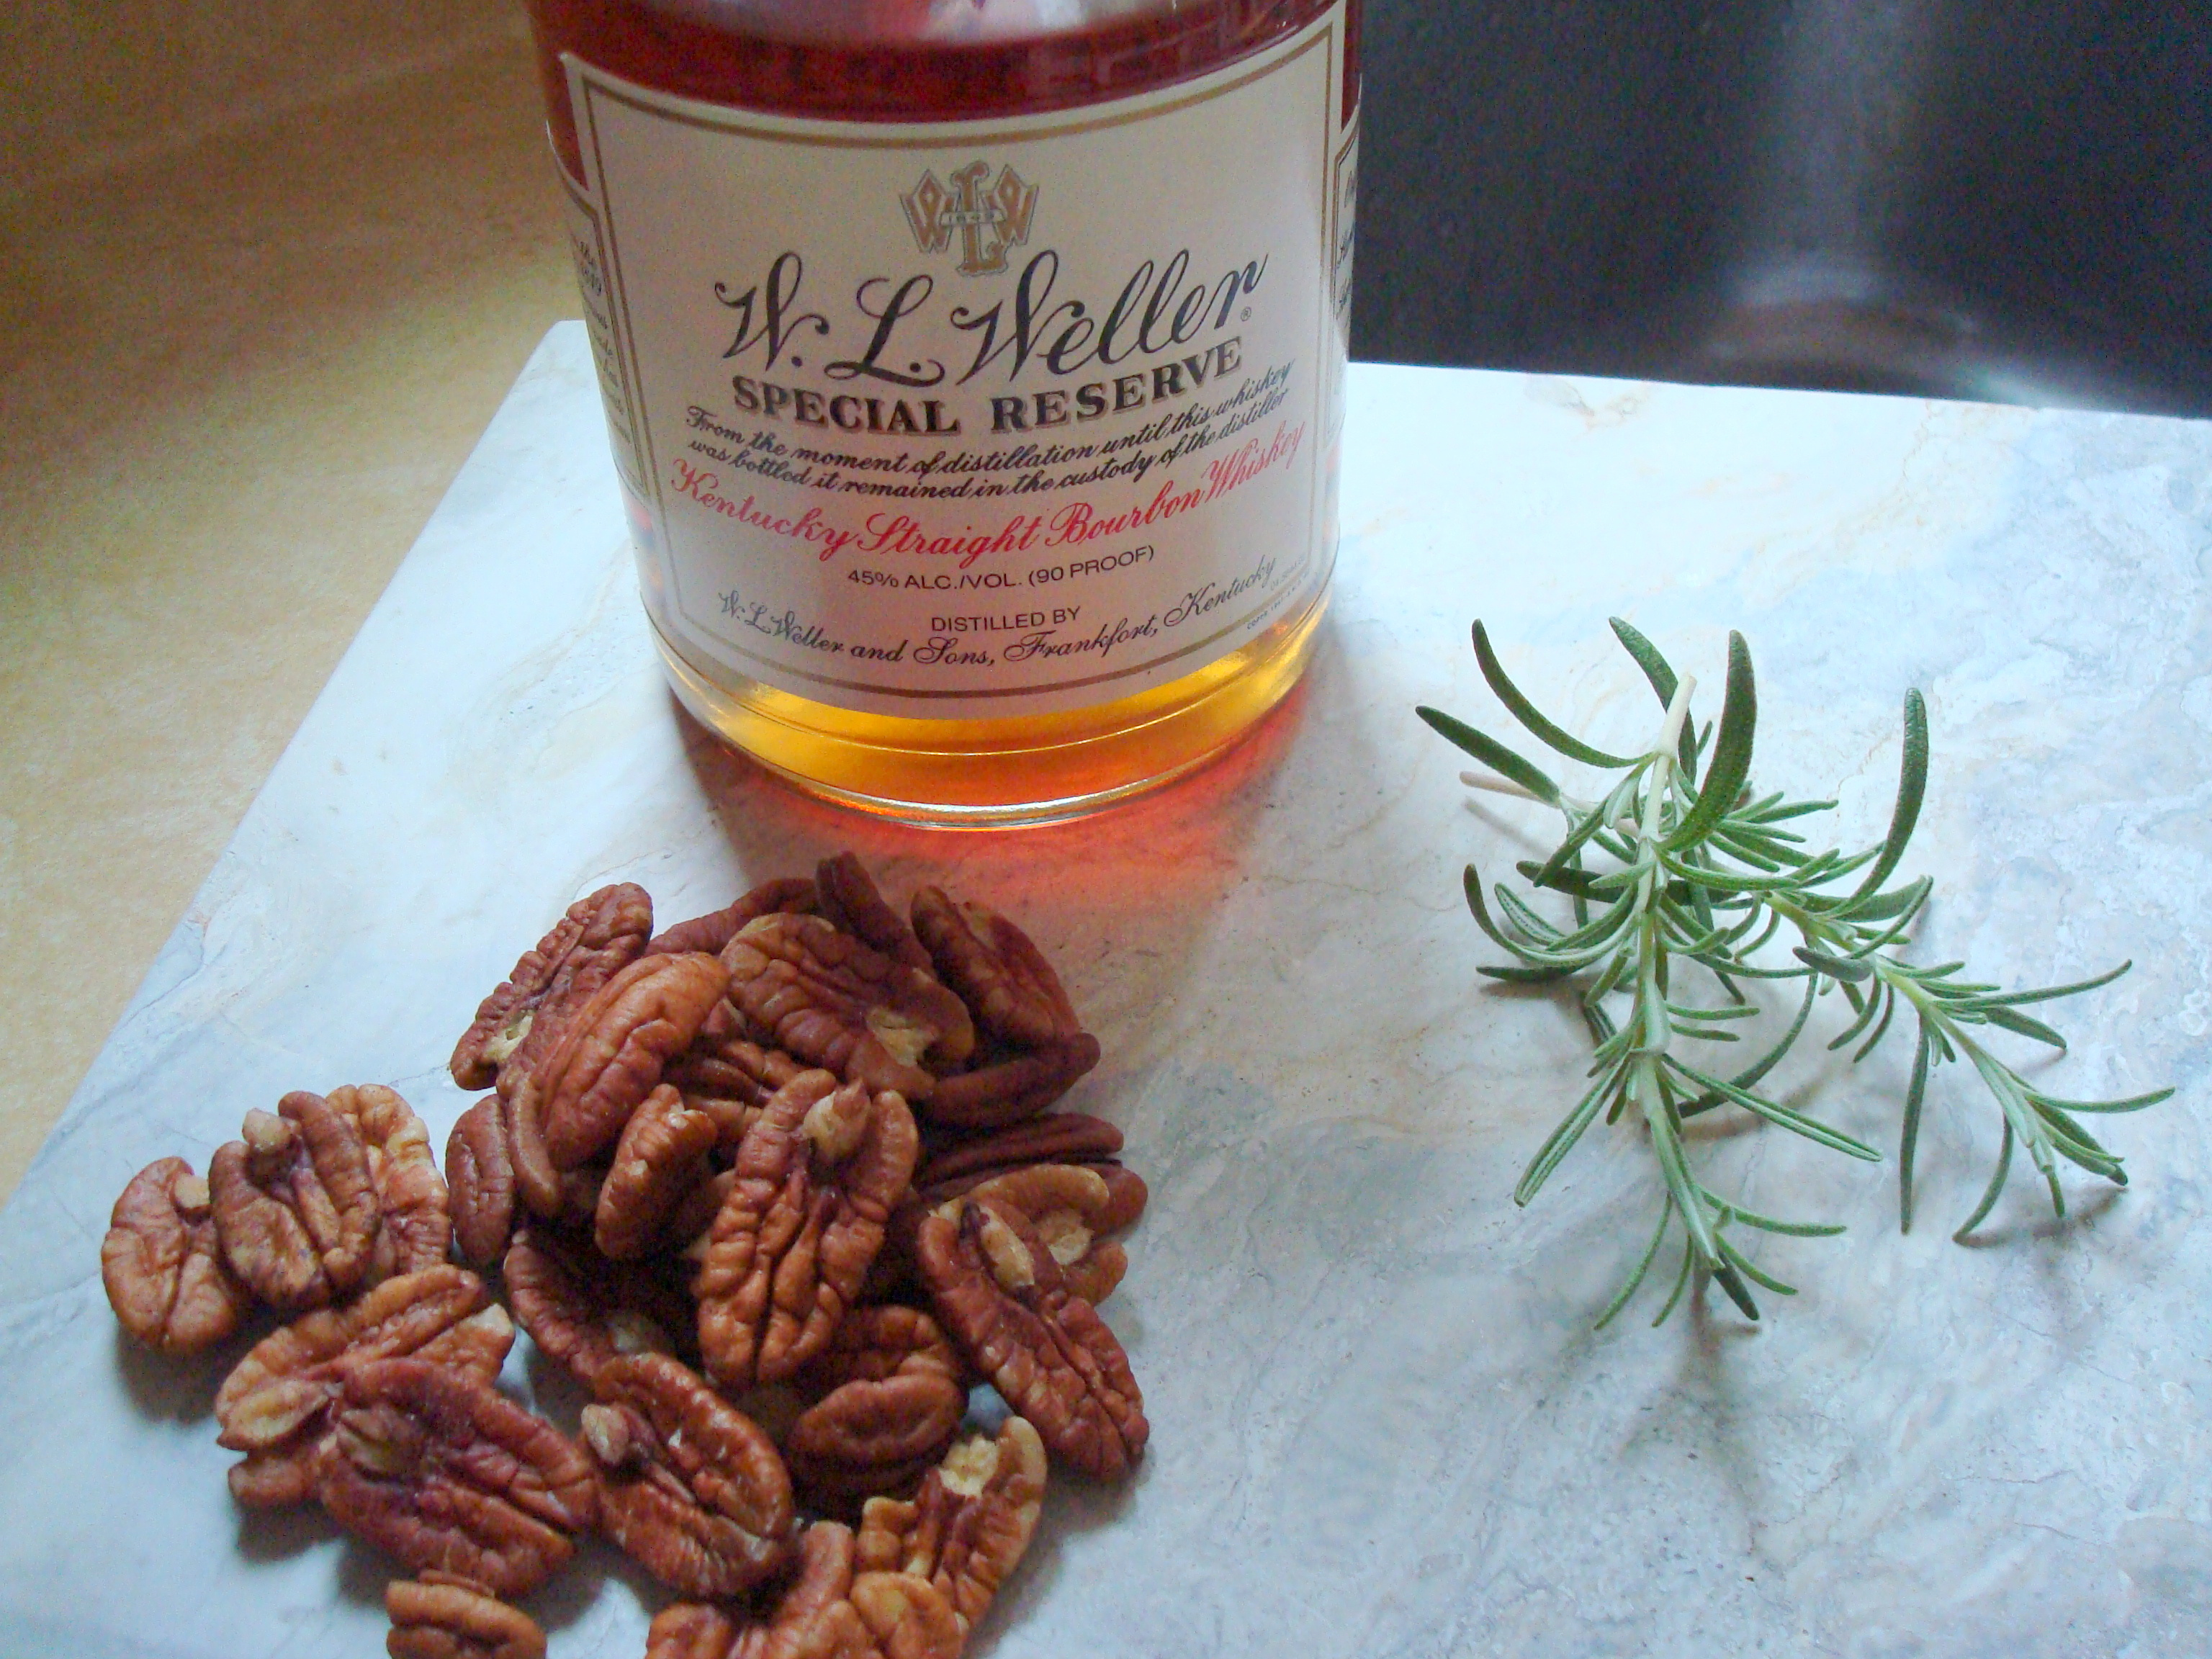 ... potatoes, rosemary, pecans, bourbon. What's not to like in there